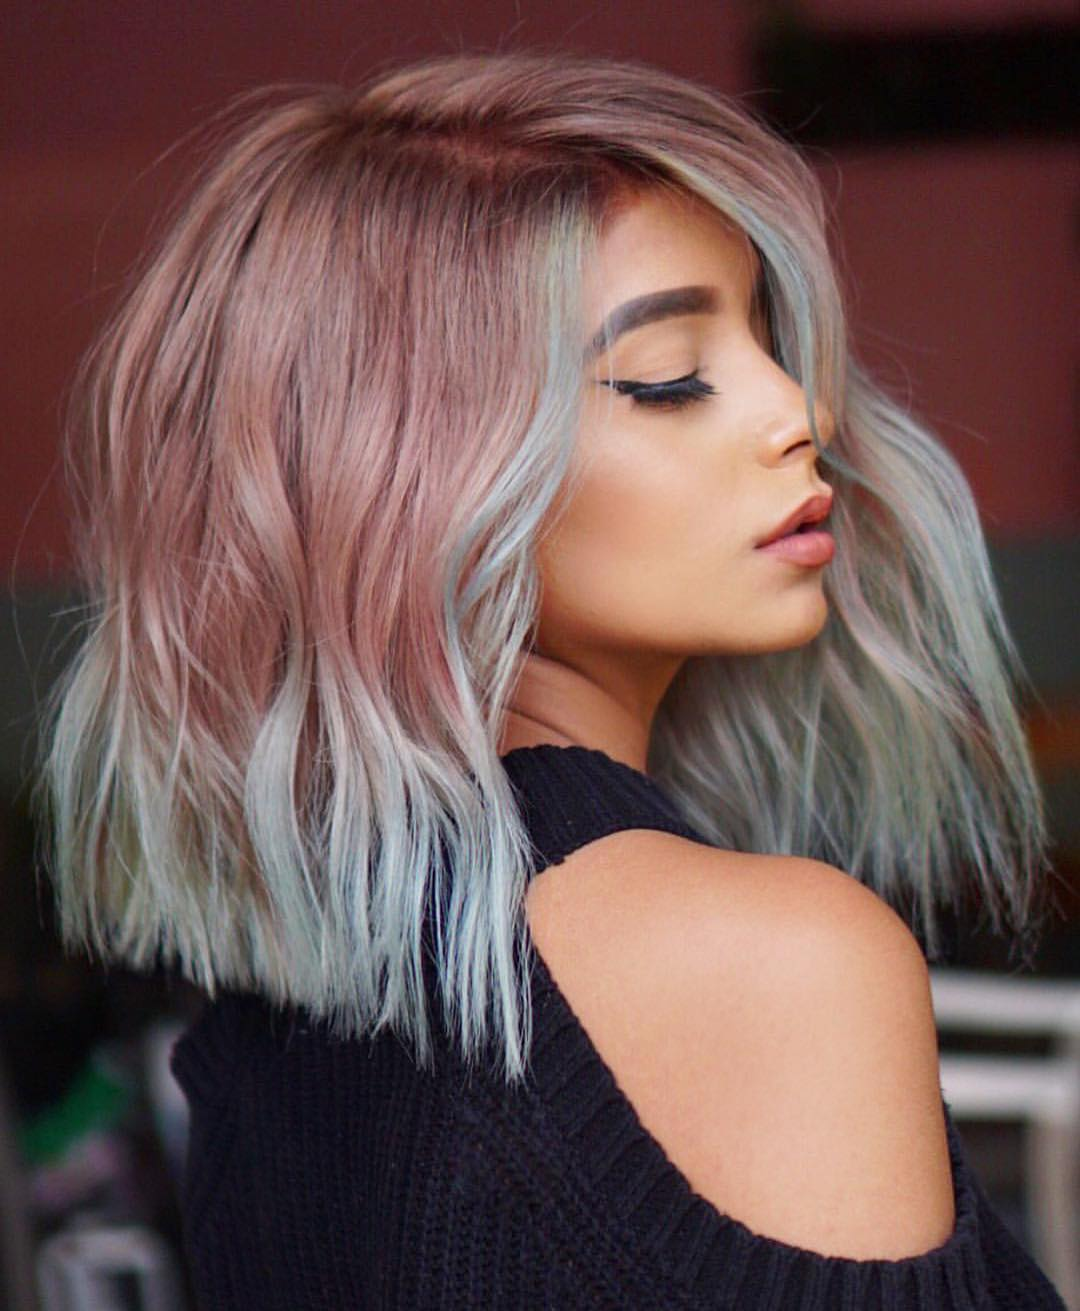 10 stylish lob hairstyle ideas, best shoulder length hair for women 2019